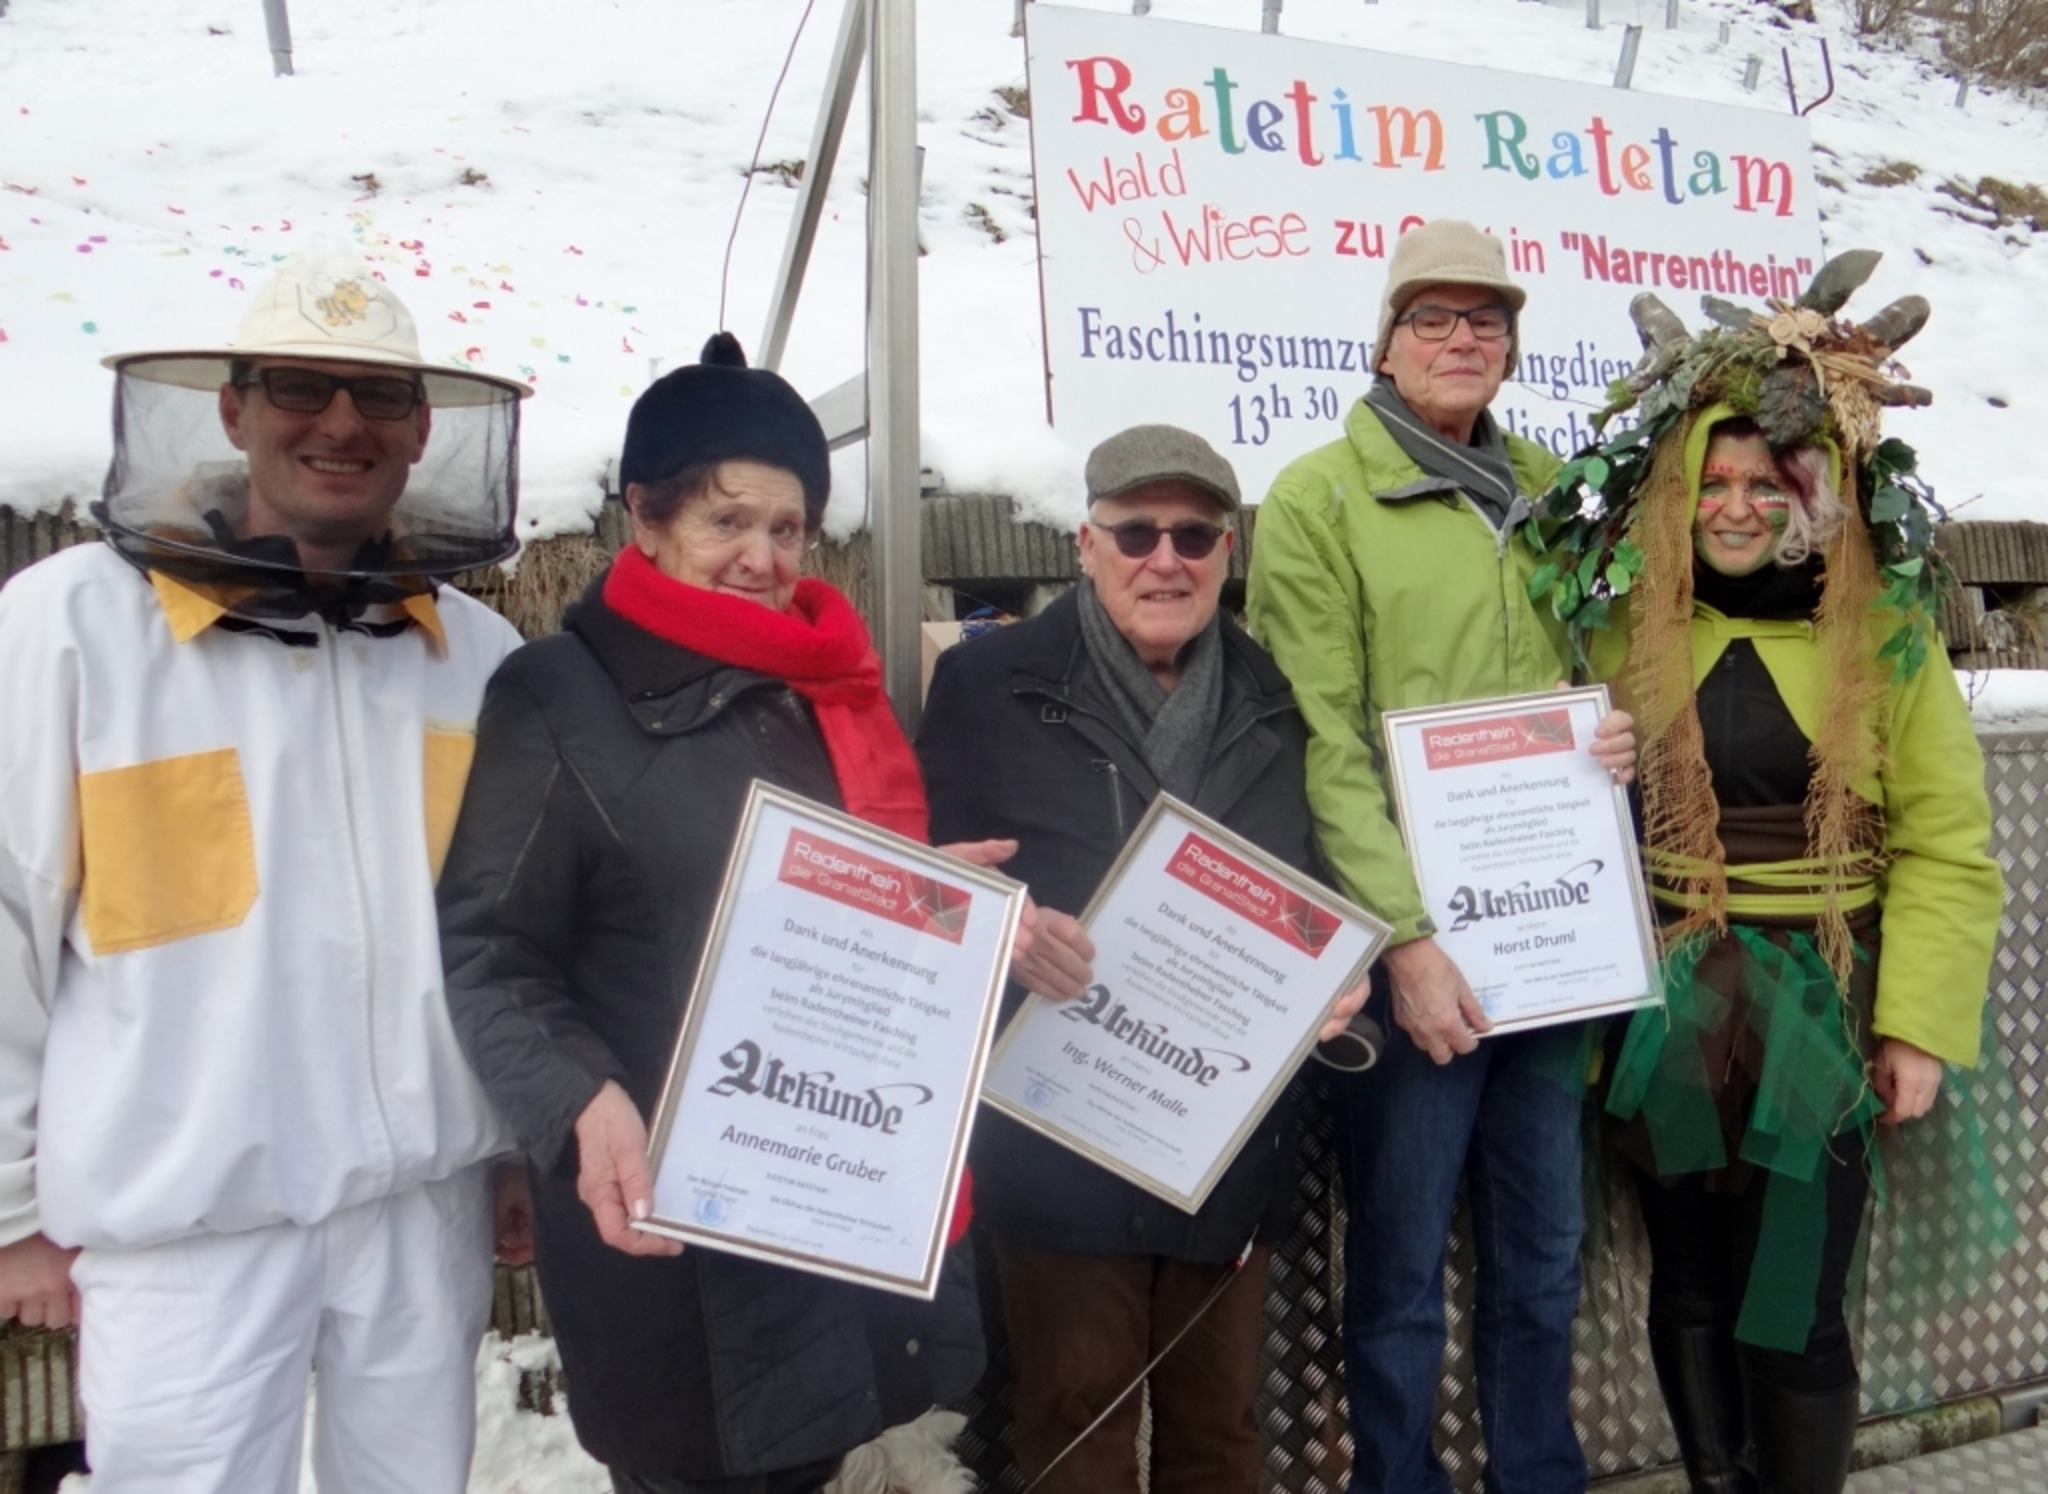 Ratetim Ratetam In Radenthein Spittal